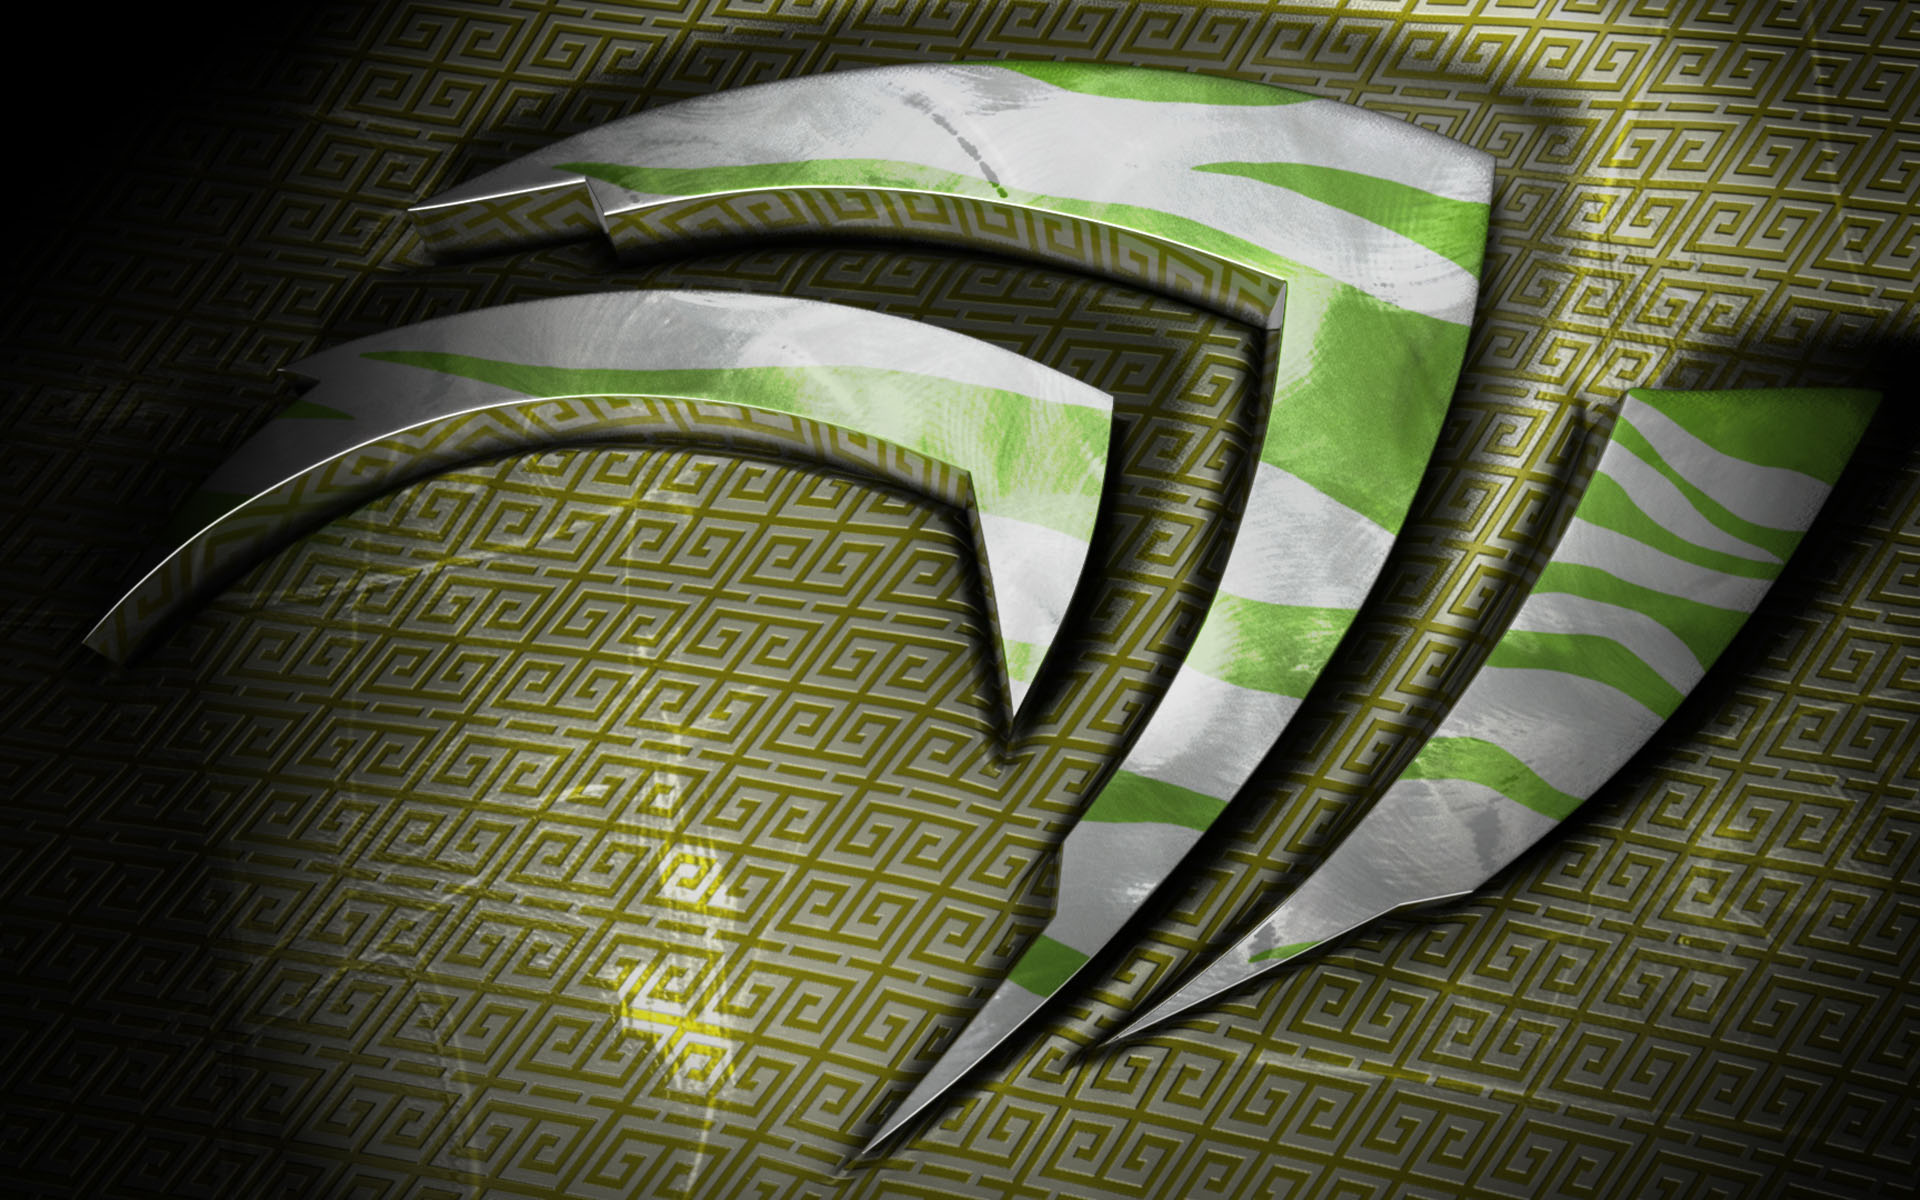 Nvidia wallpapers photos and desktop backgrounds up to 8k - 1920x1080 wallpaper nvidia ...